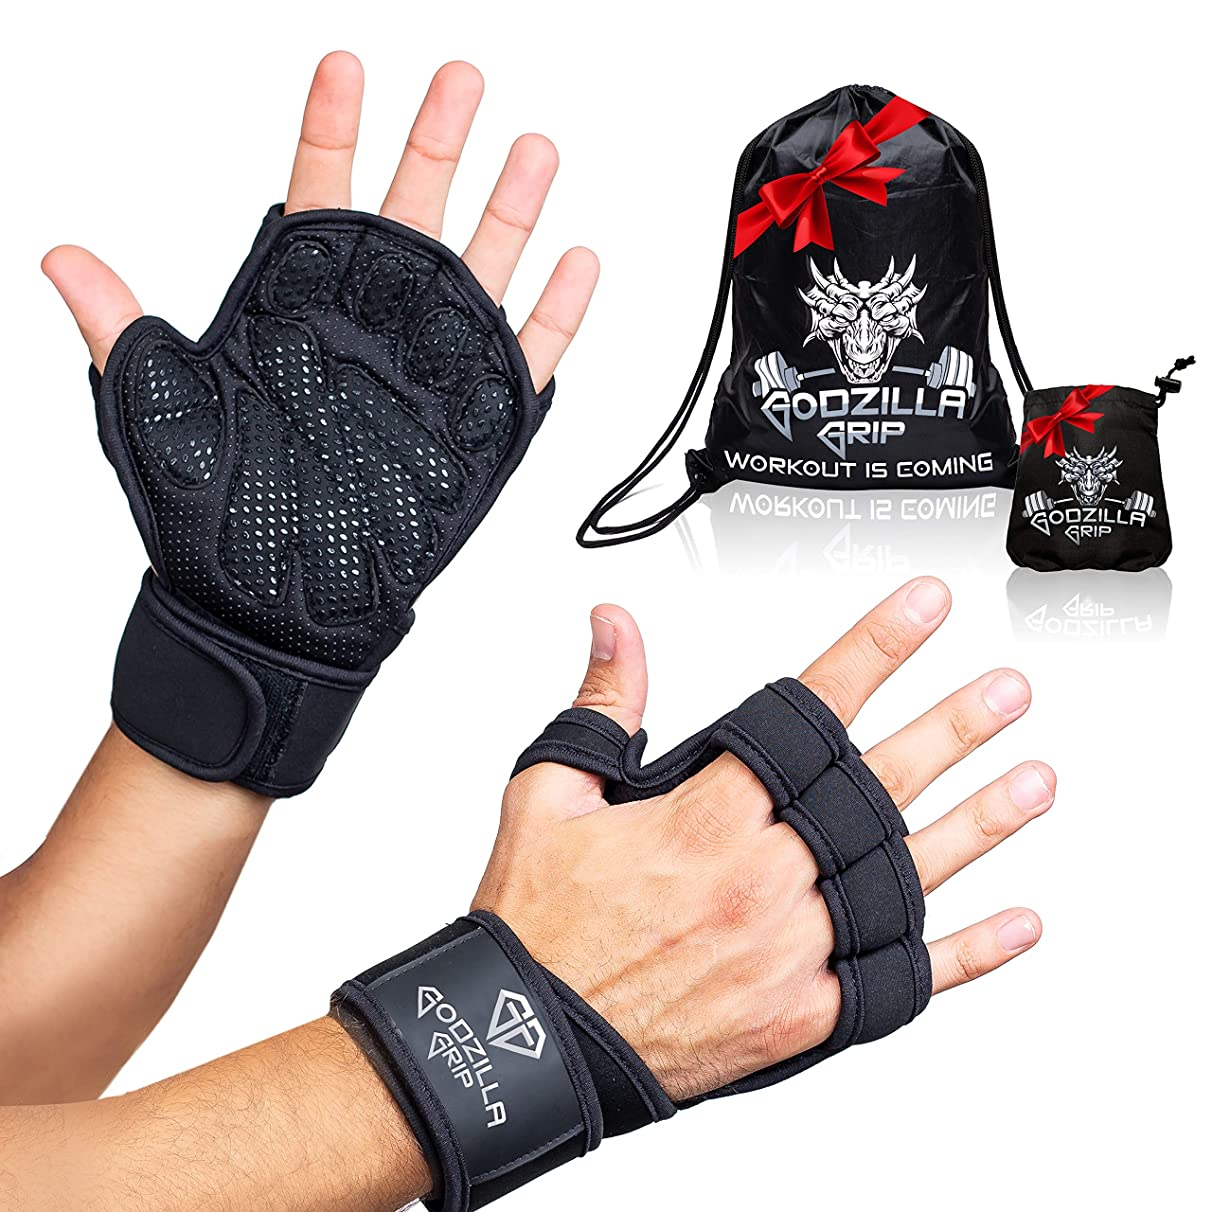 Godzilla Grip Fitness Gloves for Weightlifting, Crossfit – Black Workout Gloves with Wrist Support & Full Palm Protection for Men &Women – Hand Protection for Lifting, Workouts, Cross Training